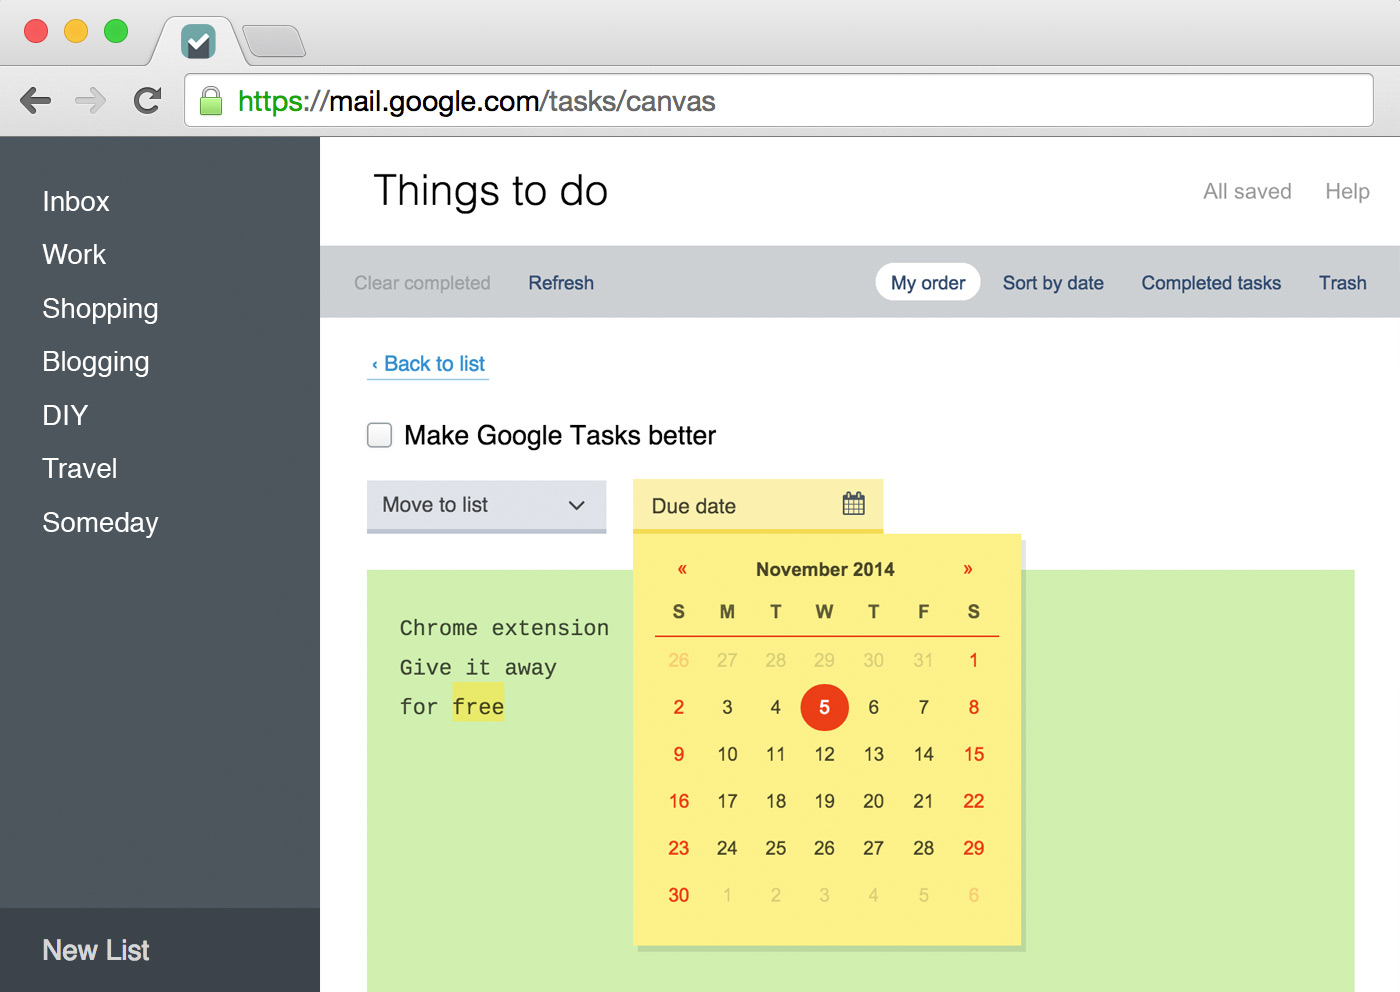 Better Google Tasks